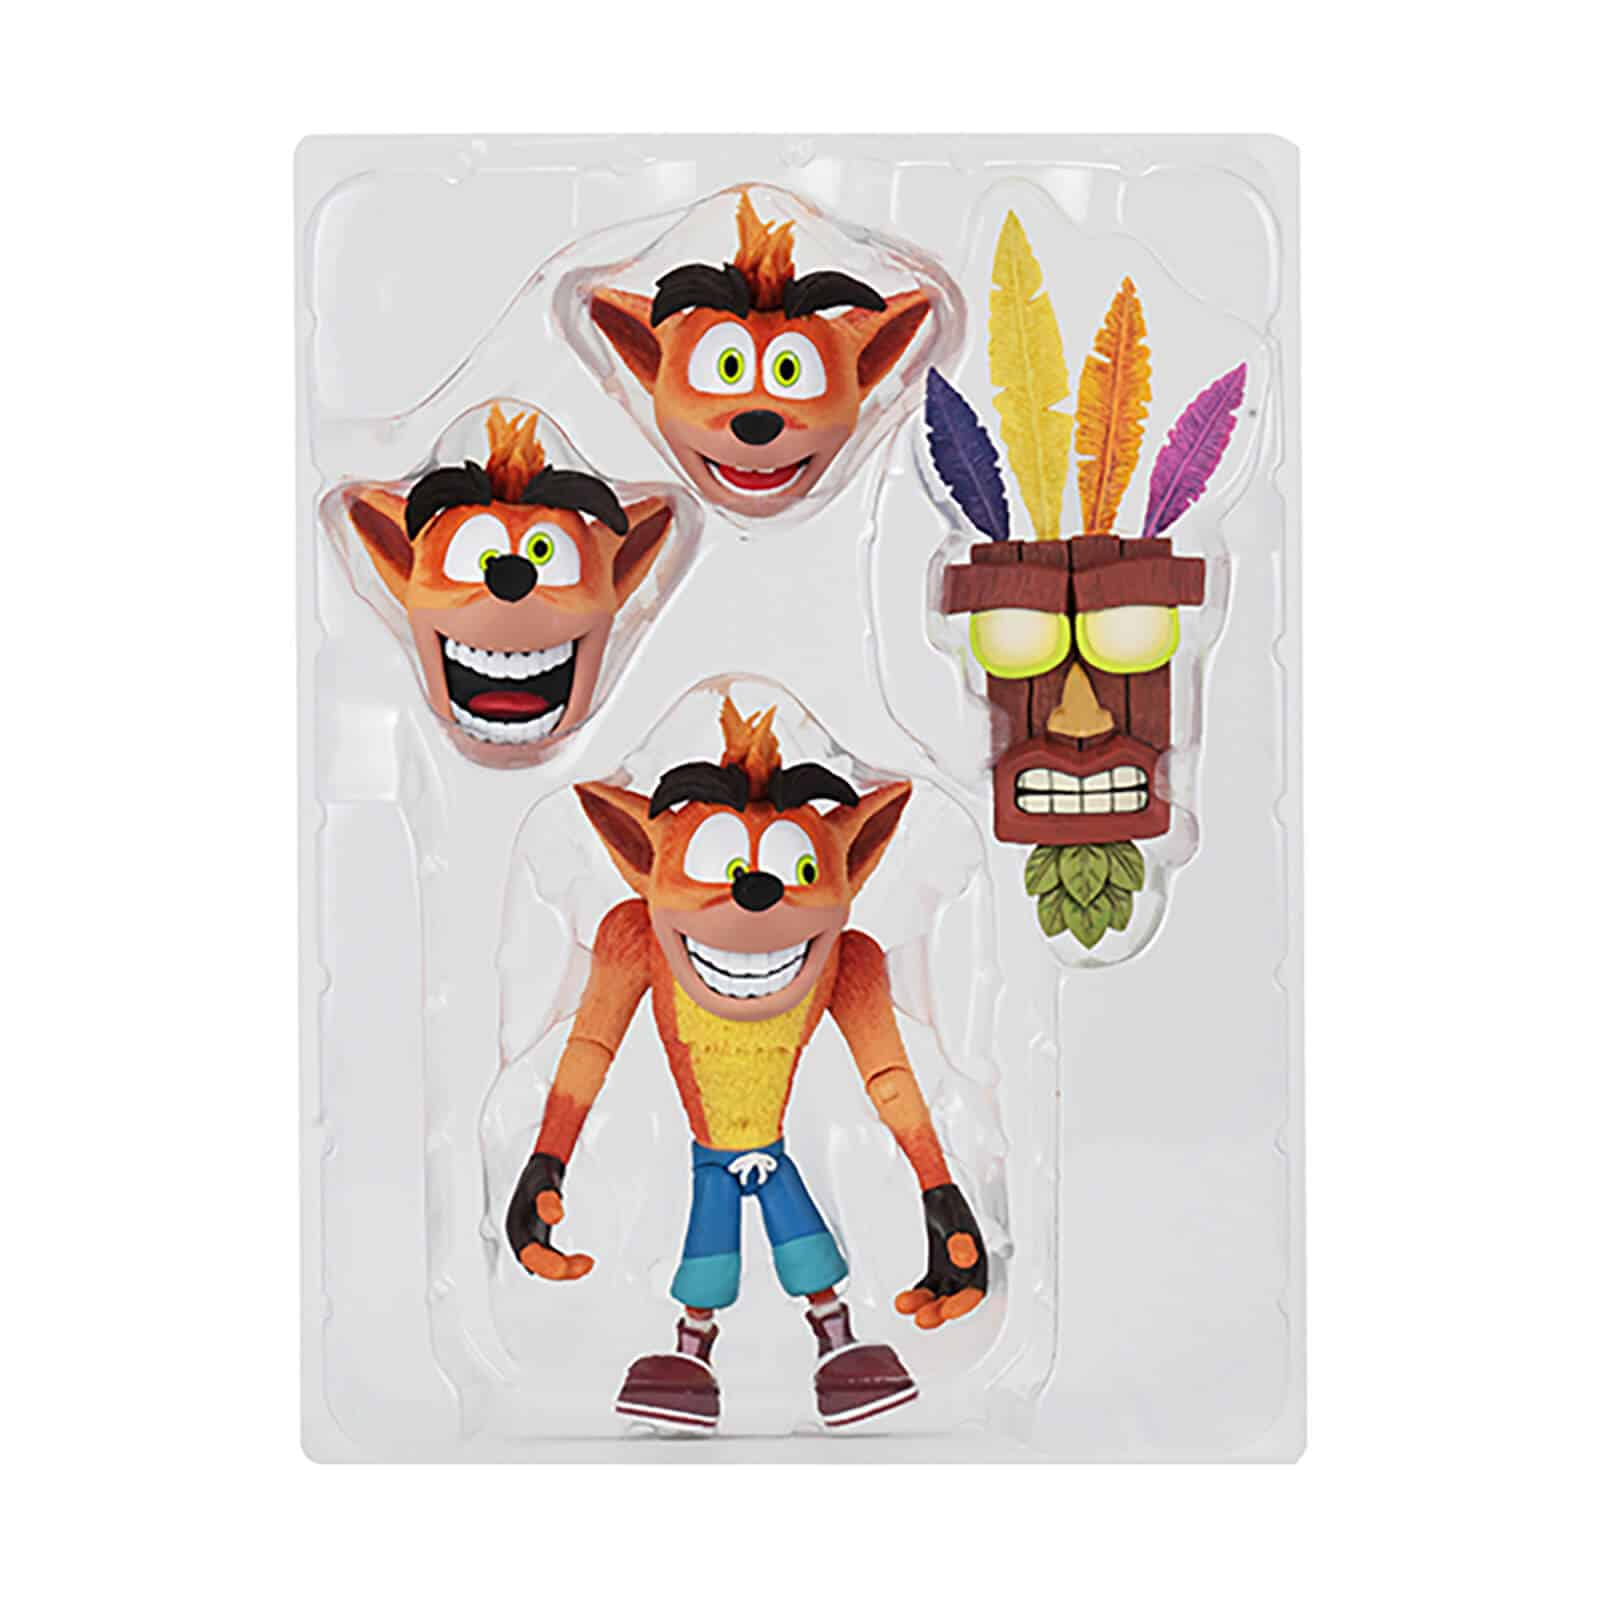 "NECA Crash Bandicoot - 7"" Scale Action Figure- Ultra Deluxe Crash Bandicoot für 42,48€"